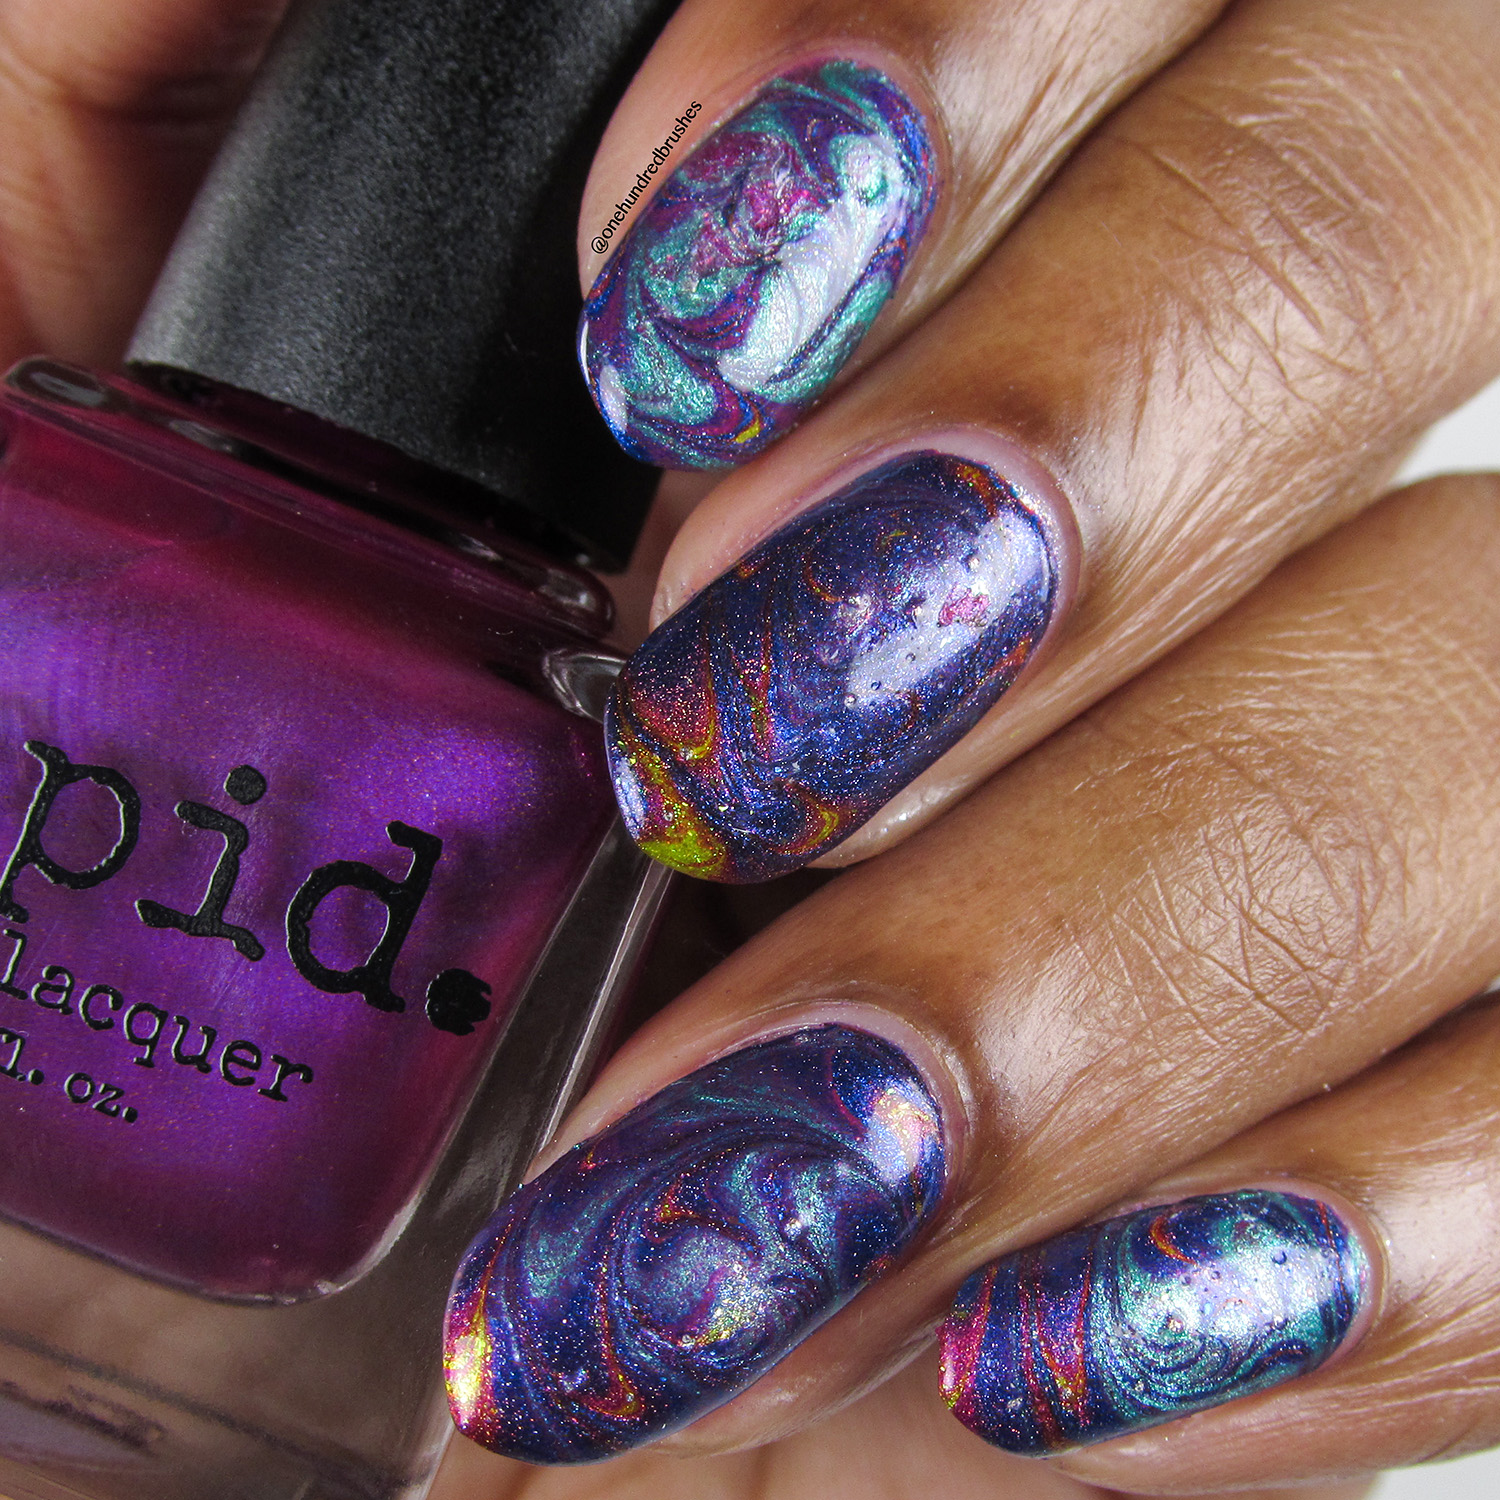 Swirl Watermarble - bottle - Vapid - April 2018 Spring Release - shimmer - holographic